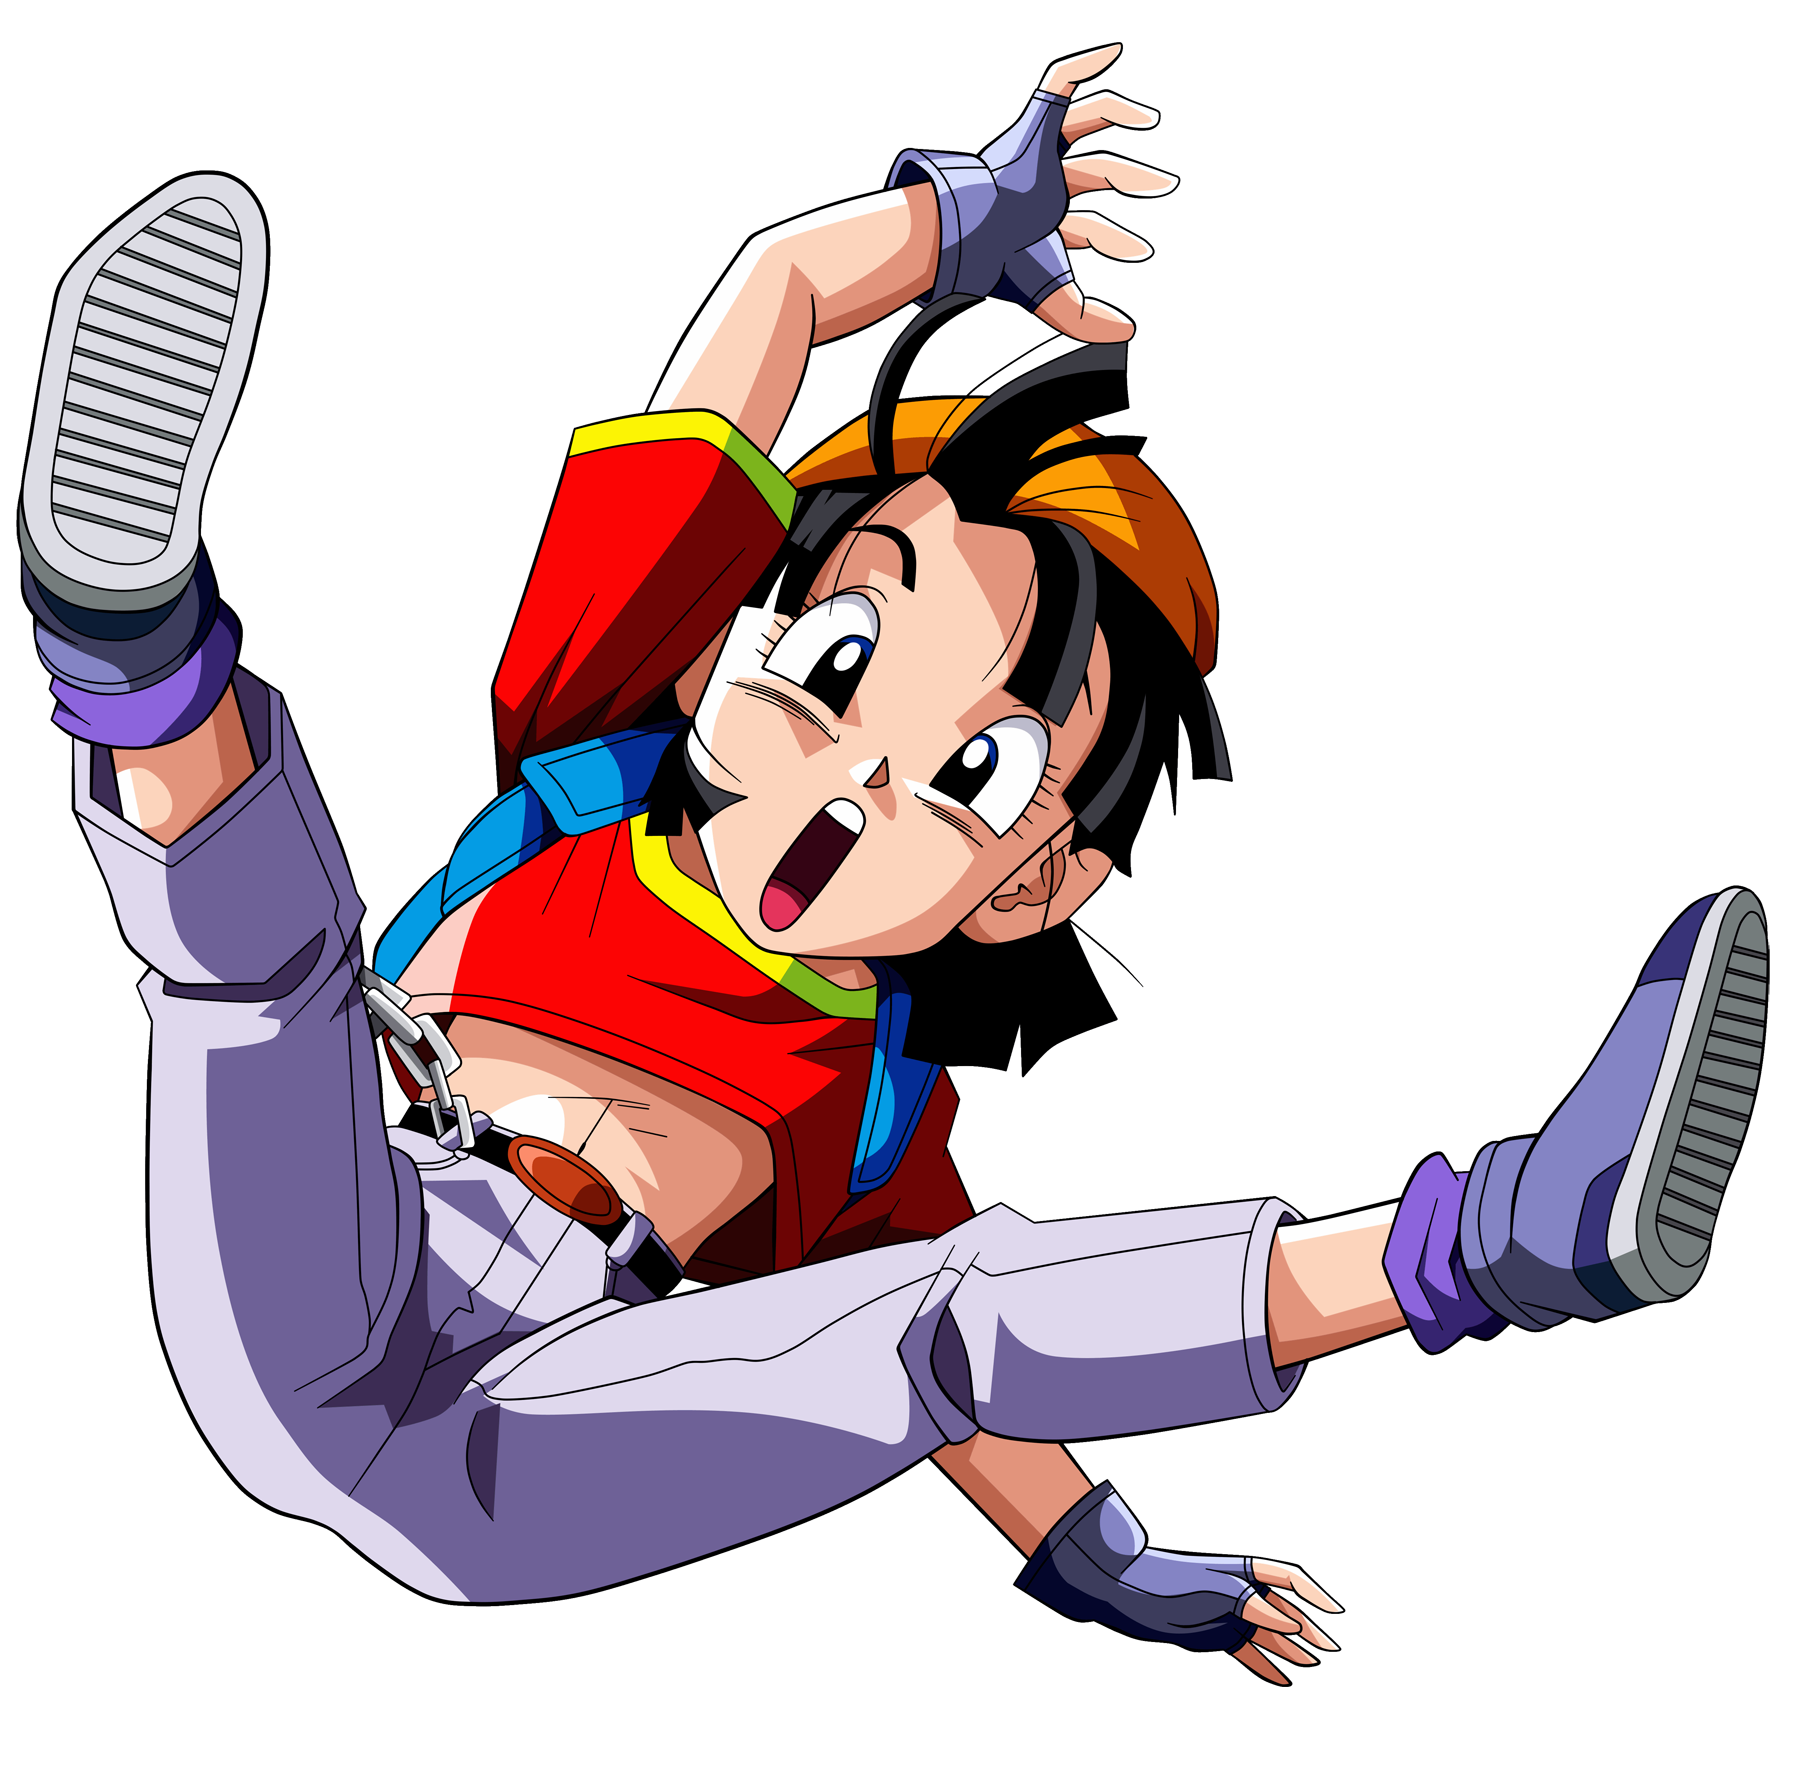 Dragon ball star free. Spaceship clipart girly